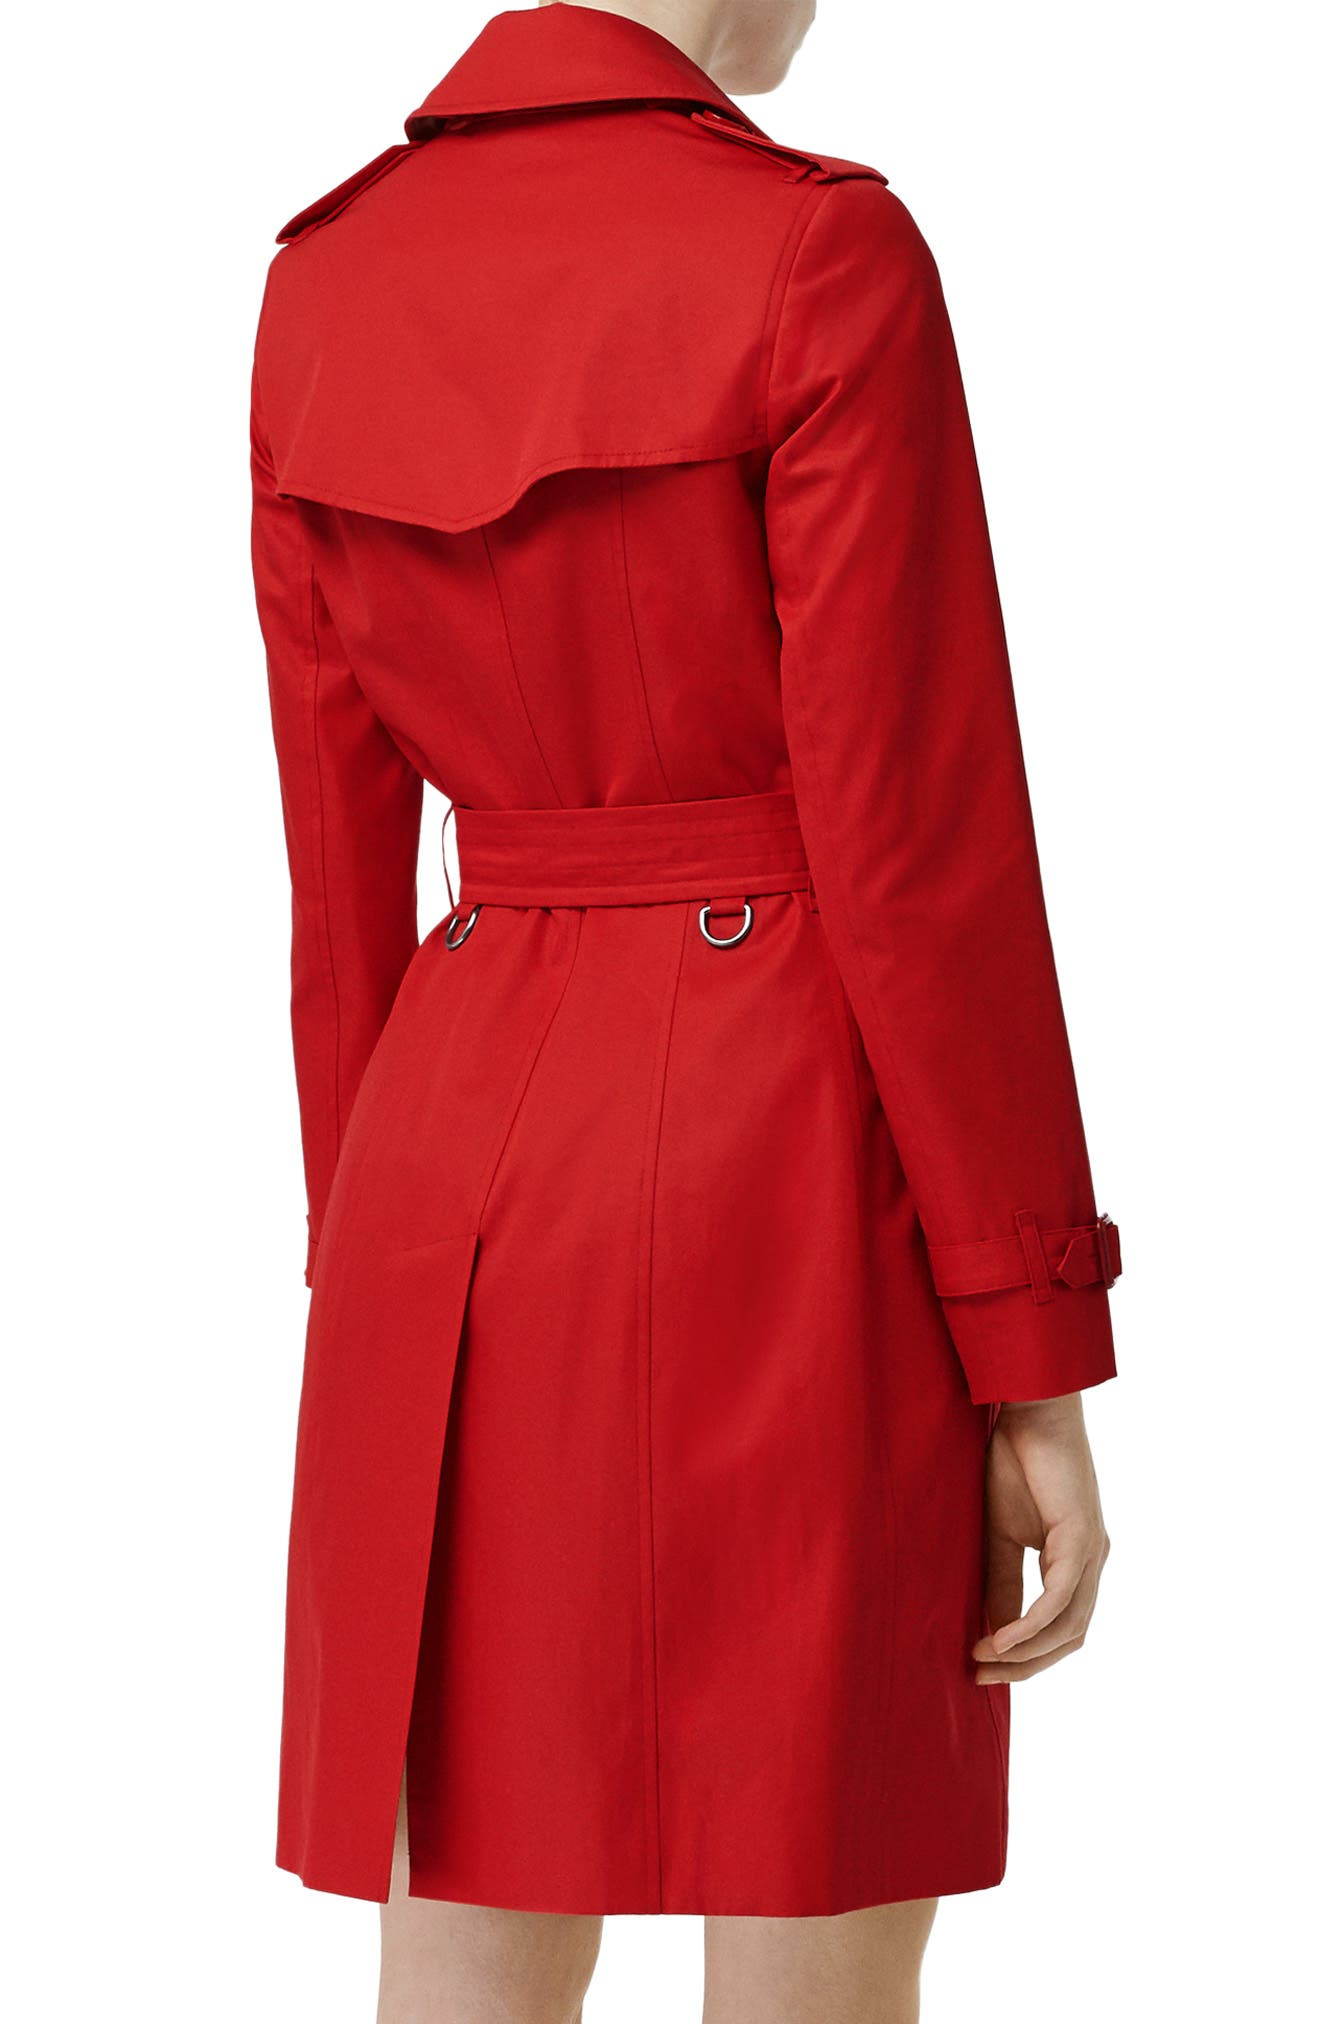 BURBERRY, The Chelsea Cotton Gabardine Trench Coat, Alternate thumbnail 2, color, BRIGHT RED